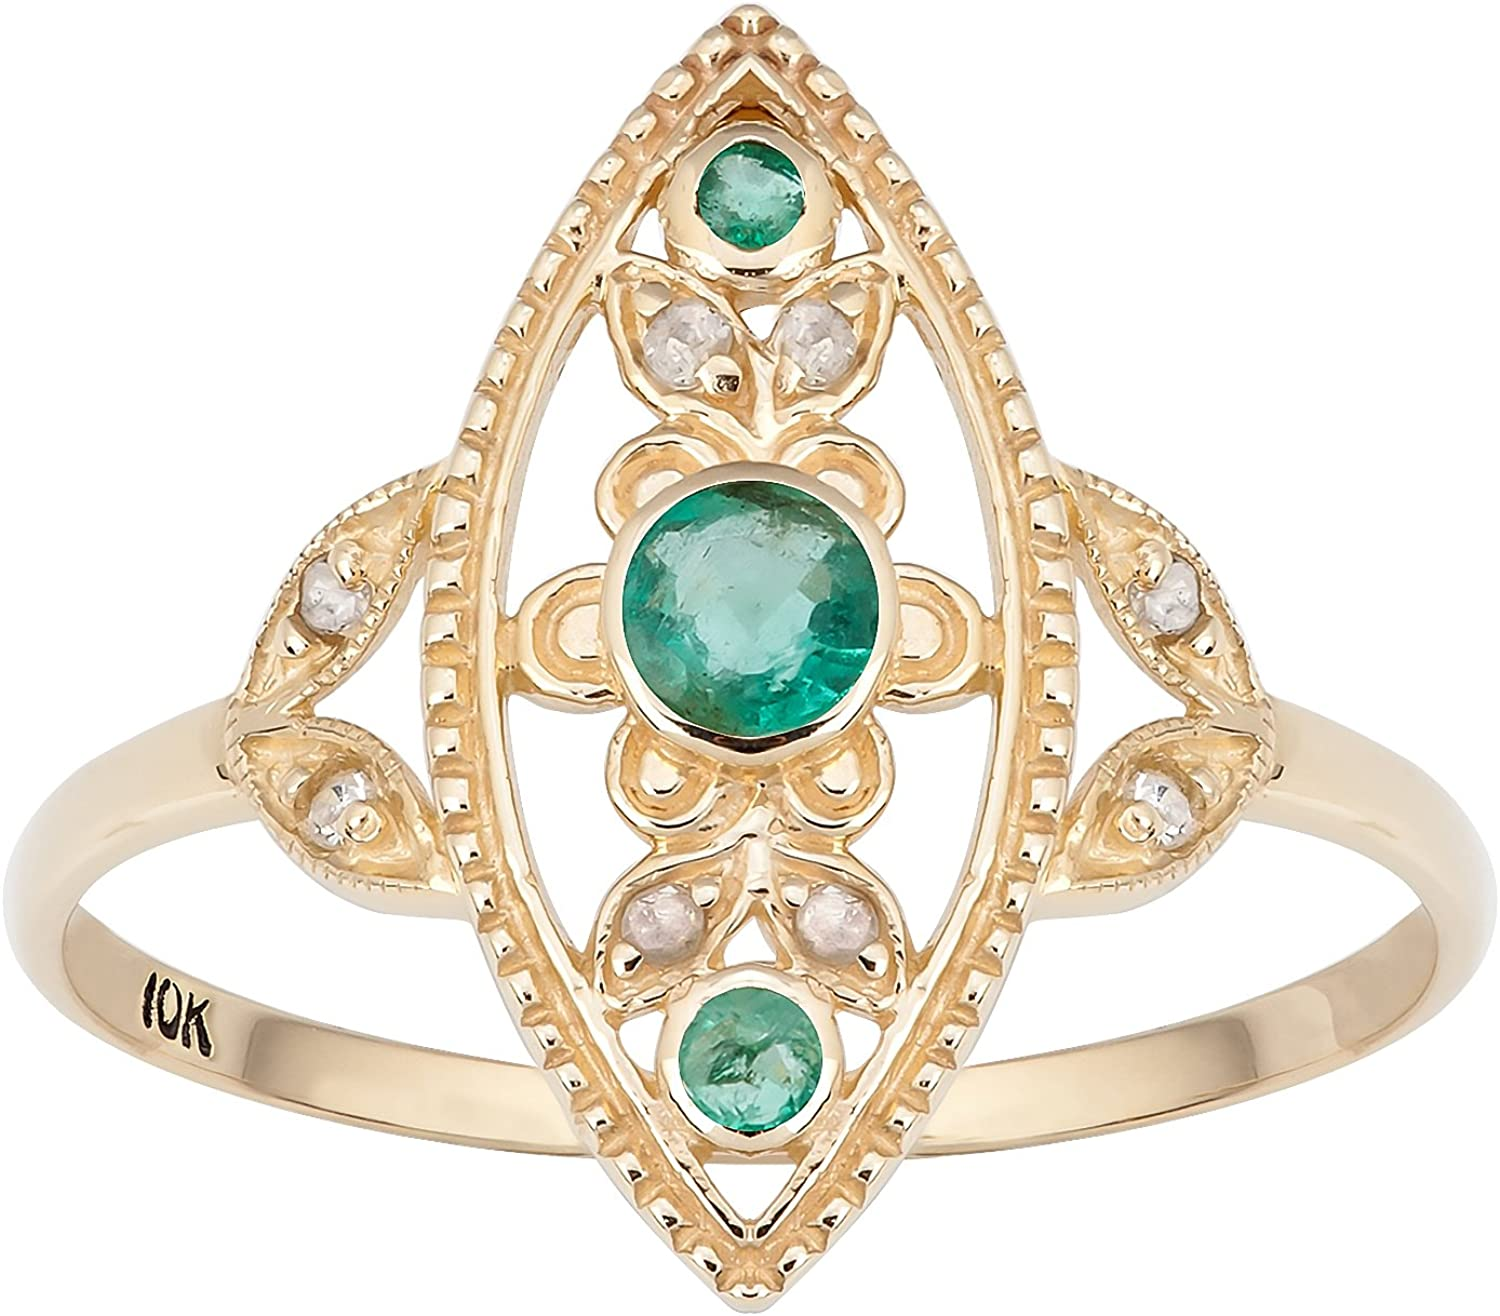 2.50Ct Emerald Cut Green Emerald Antique Vintage Ring In 14K Yellow Gold Finish